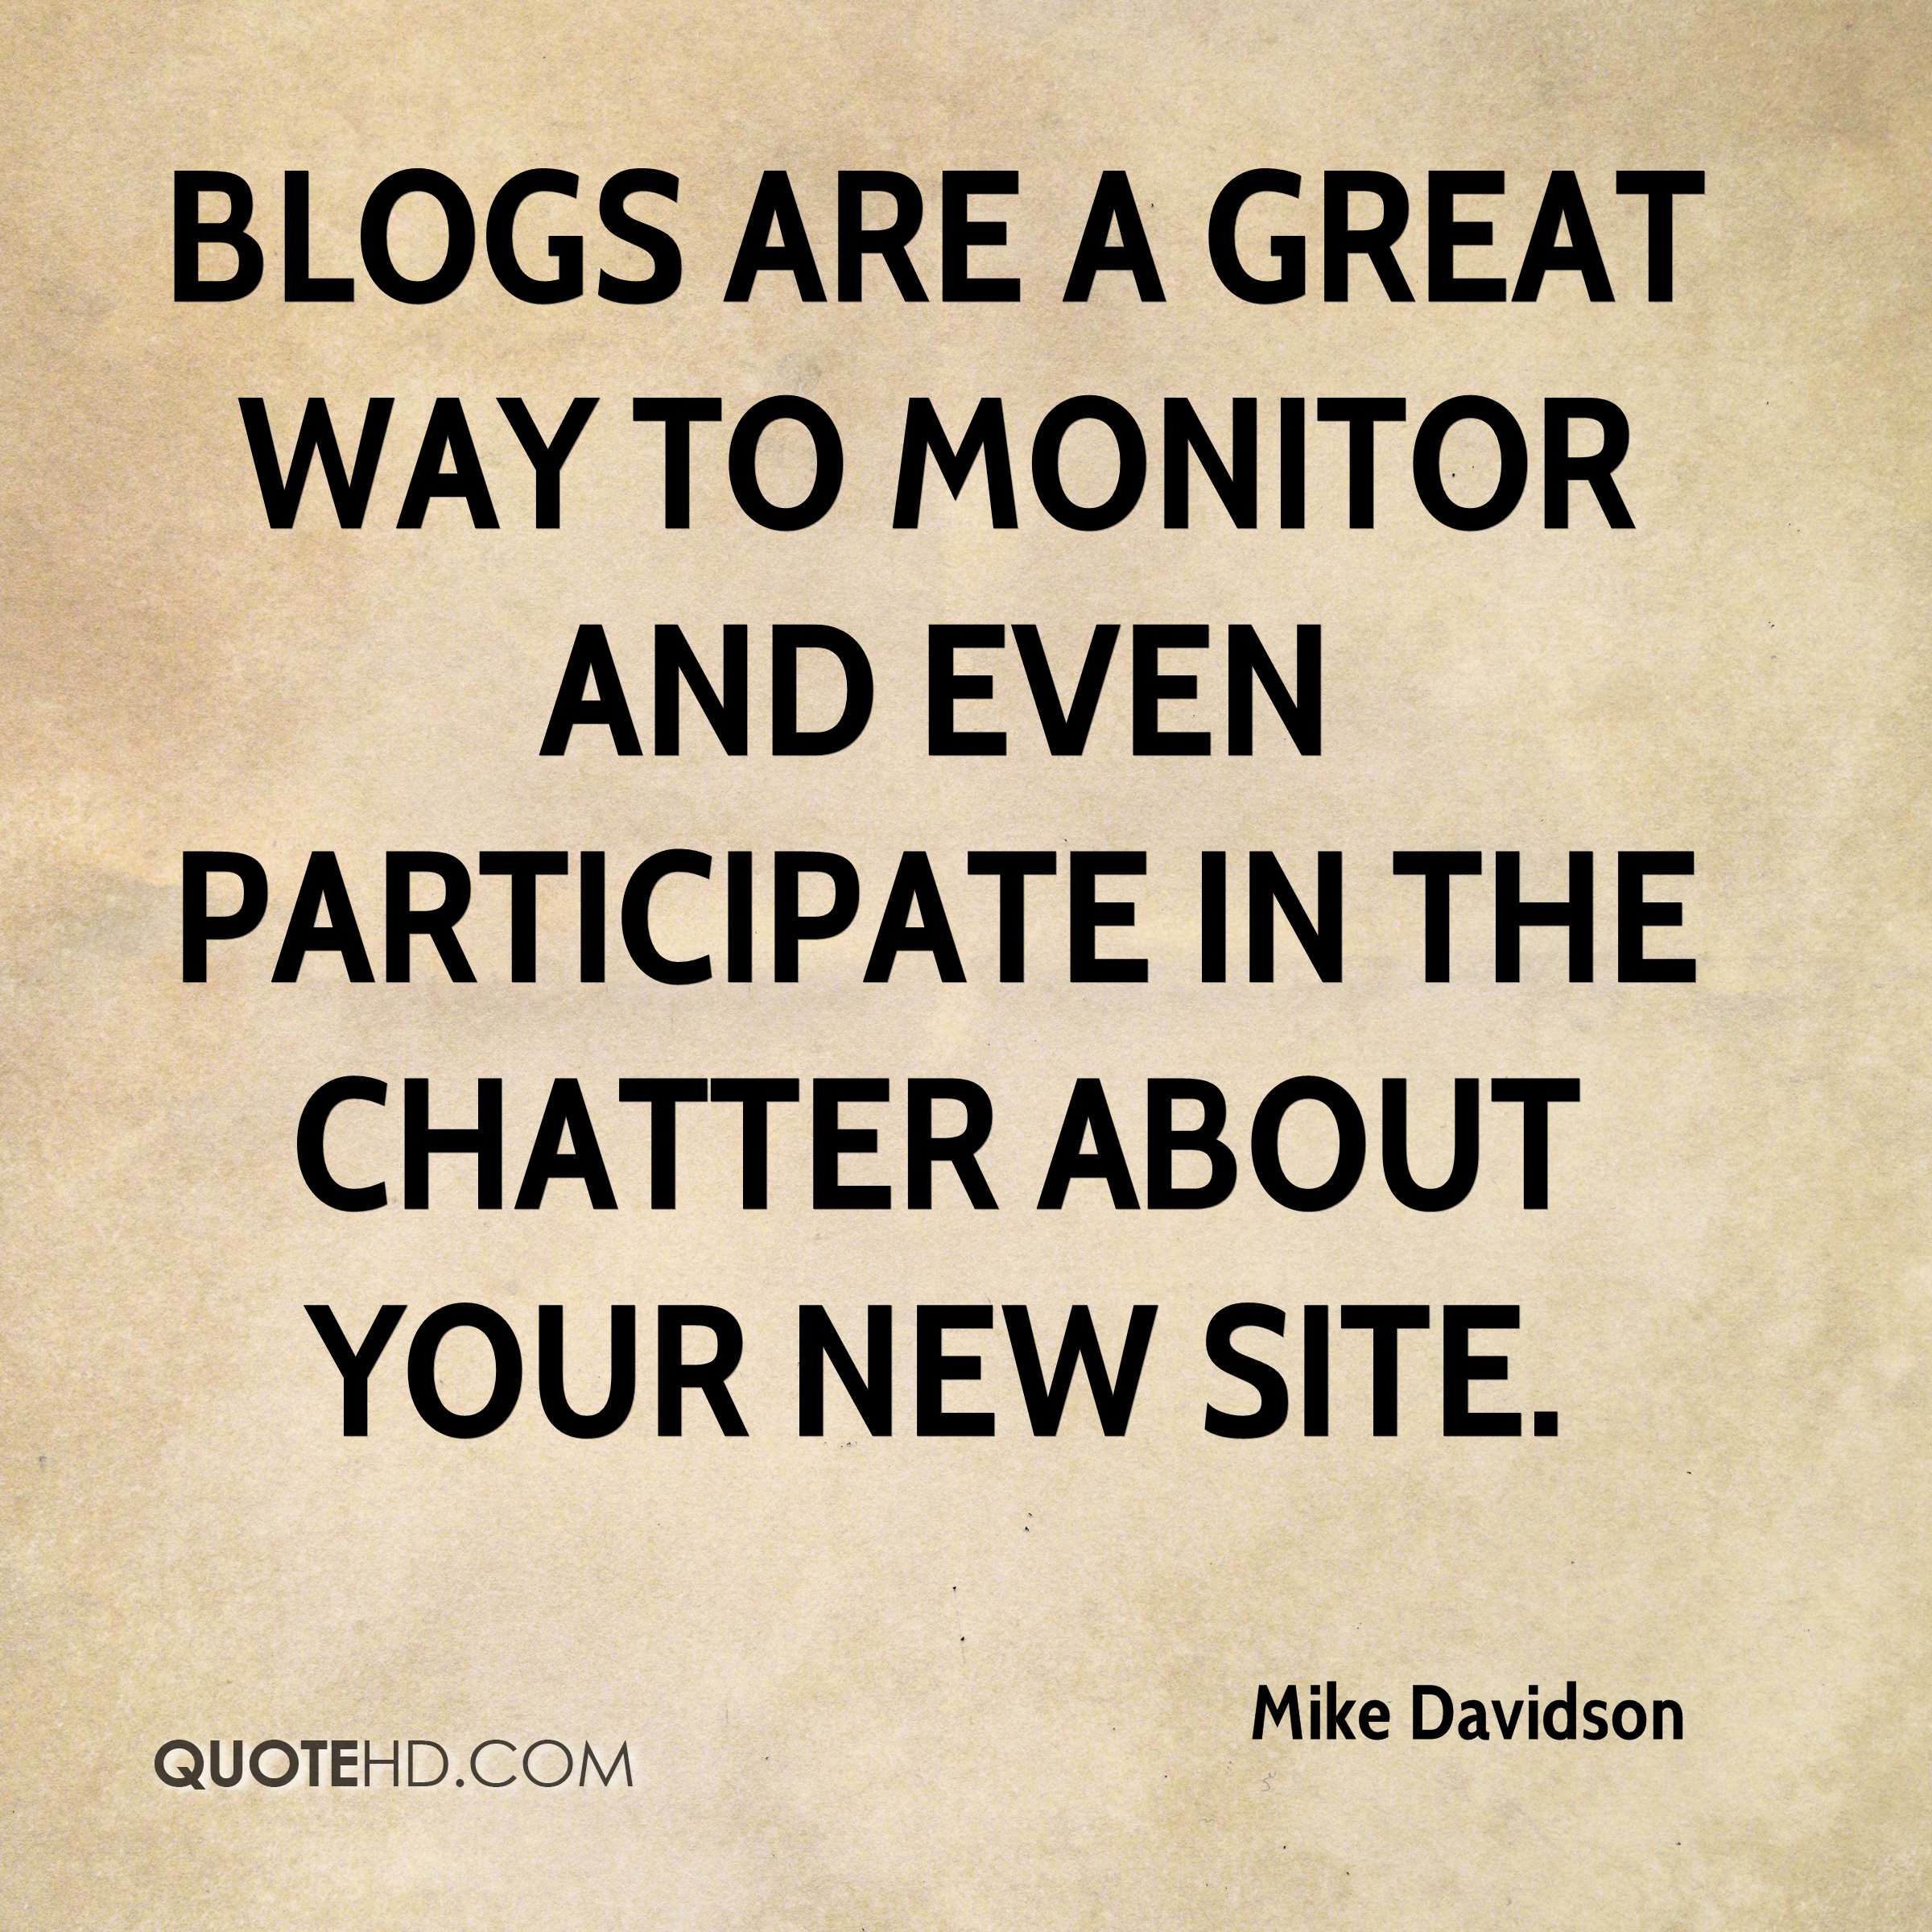 Blogs are a great way to monitor and even participate in the chatter about your new site.